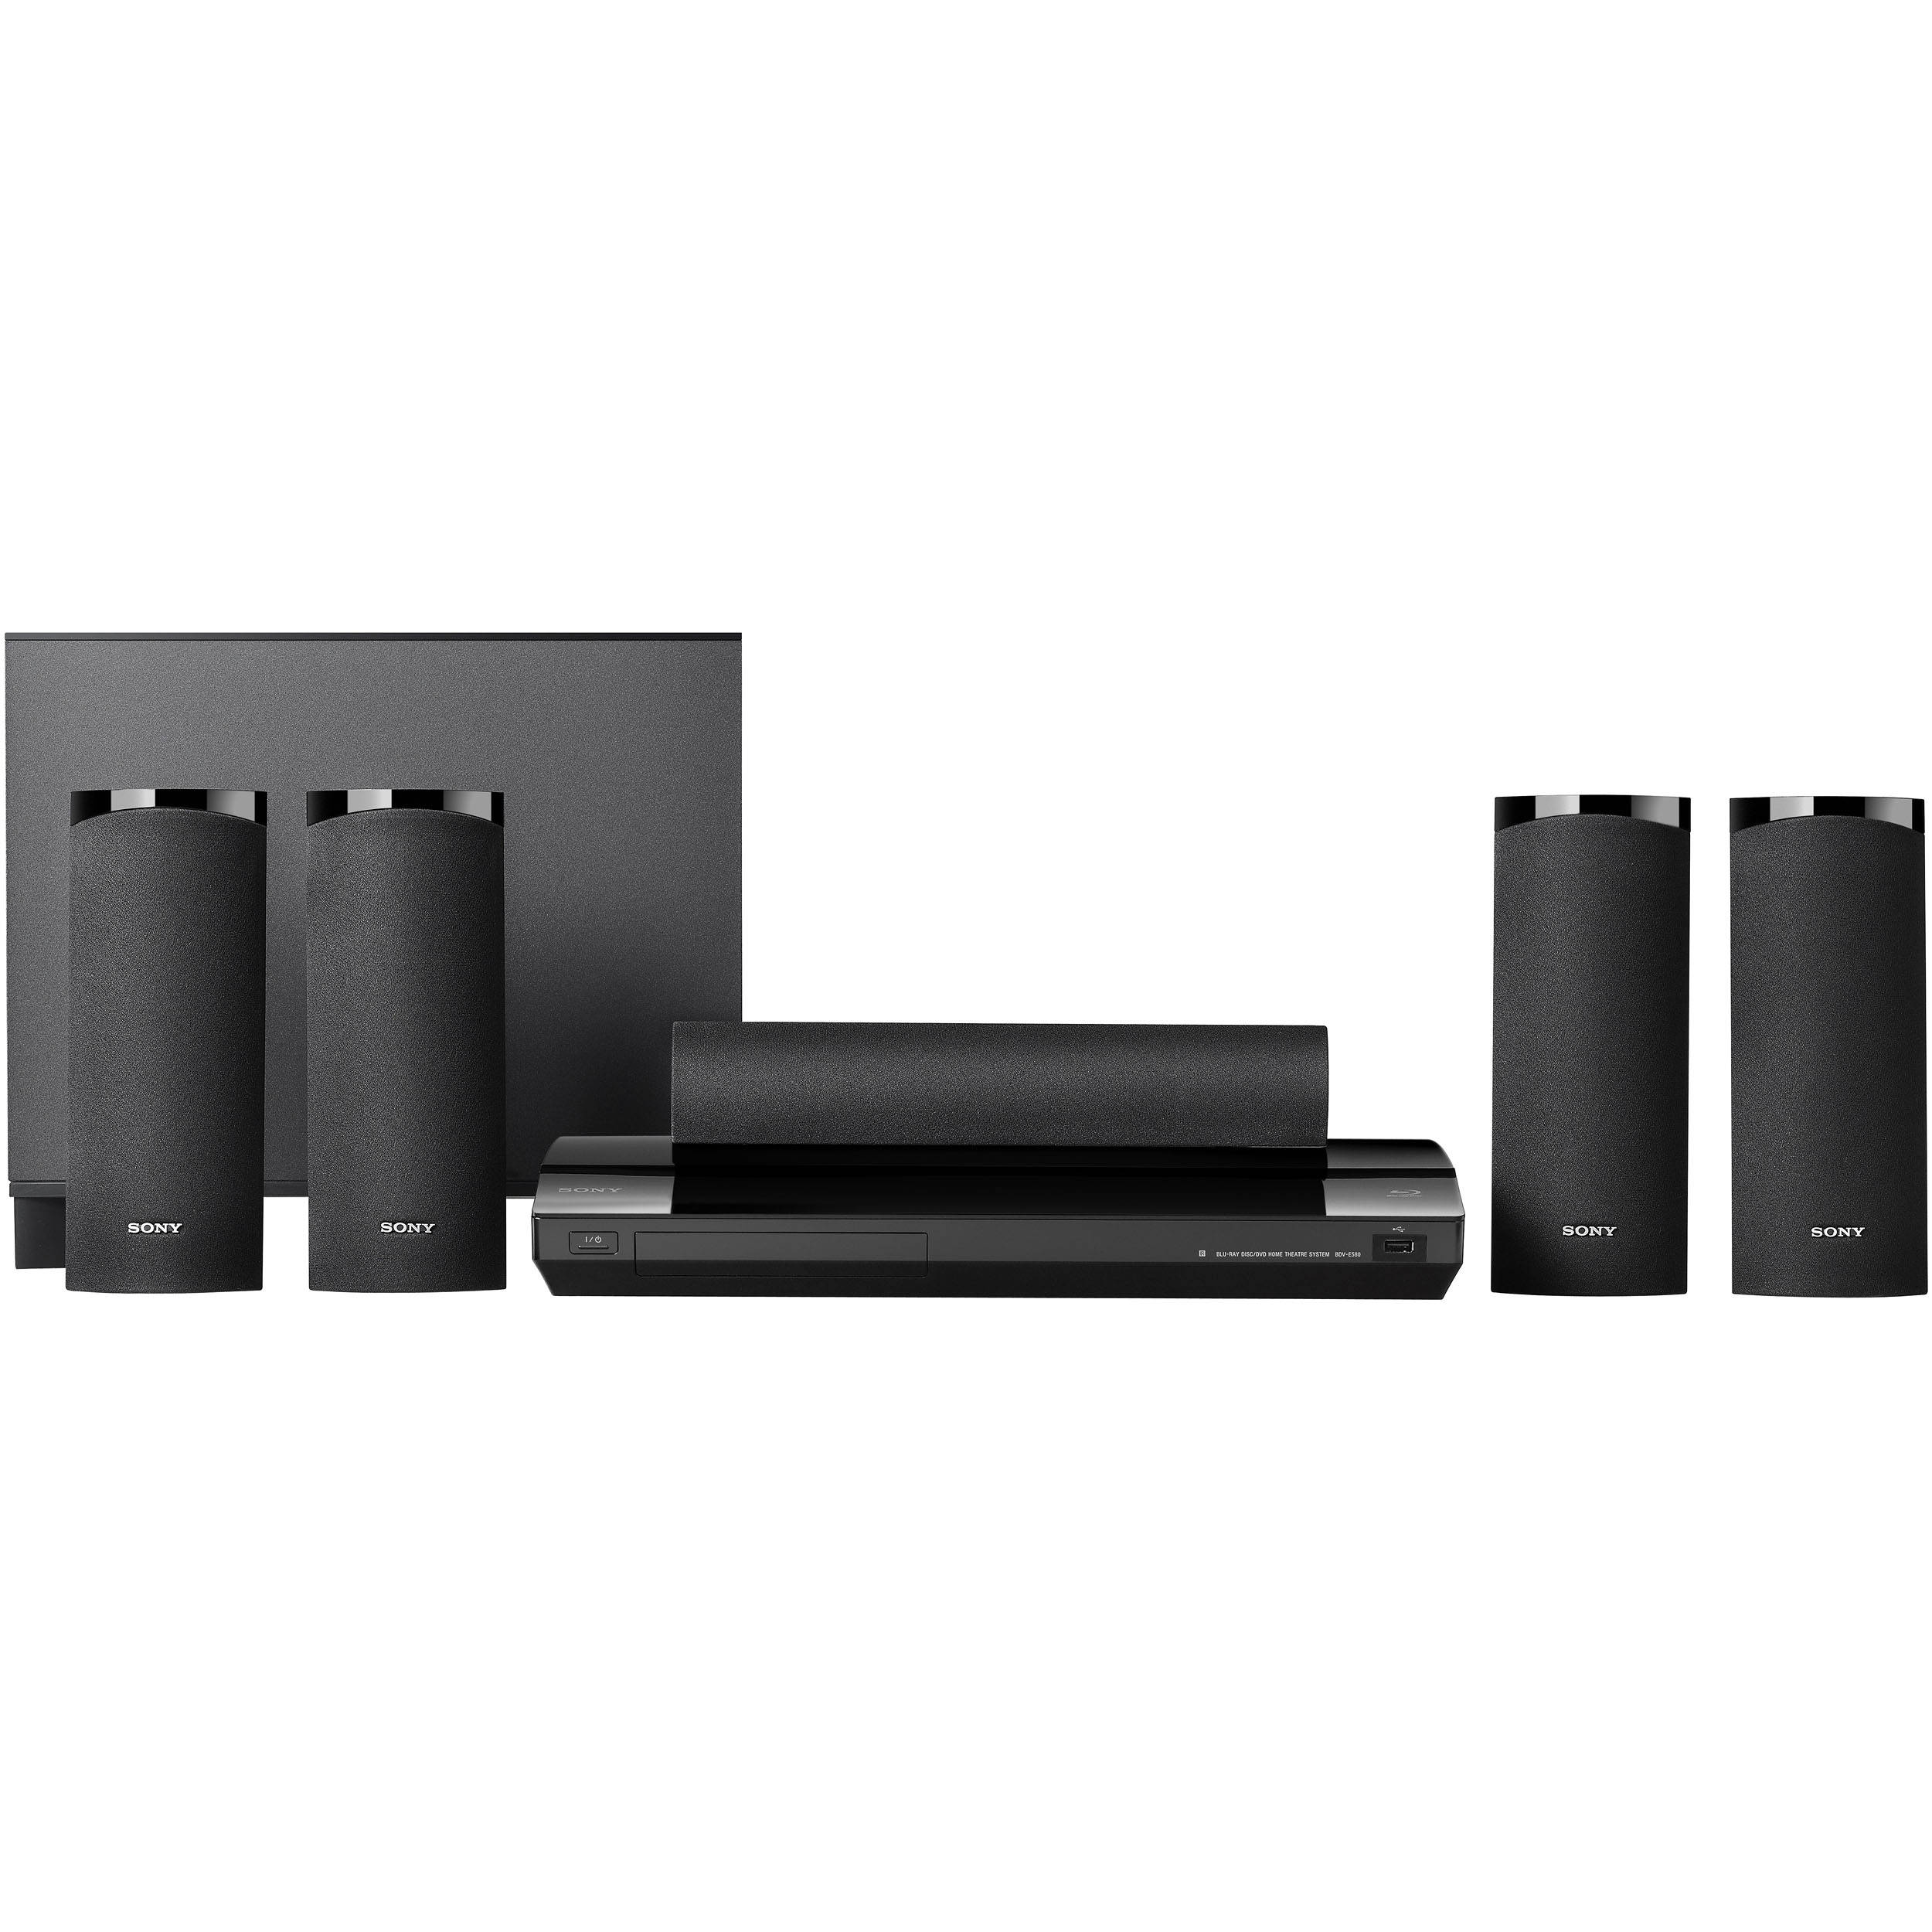 sony bdve580 3d blu ray home theater system bdve580 b h photo rh bhphotovideo com Sony Blu-ray Updates Sony Blu-ray Support